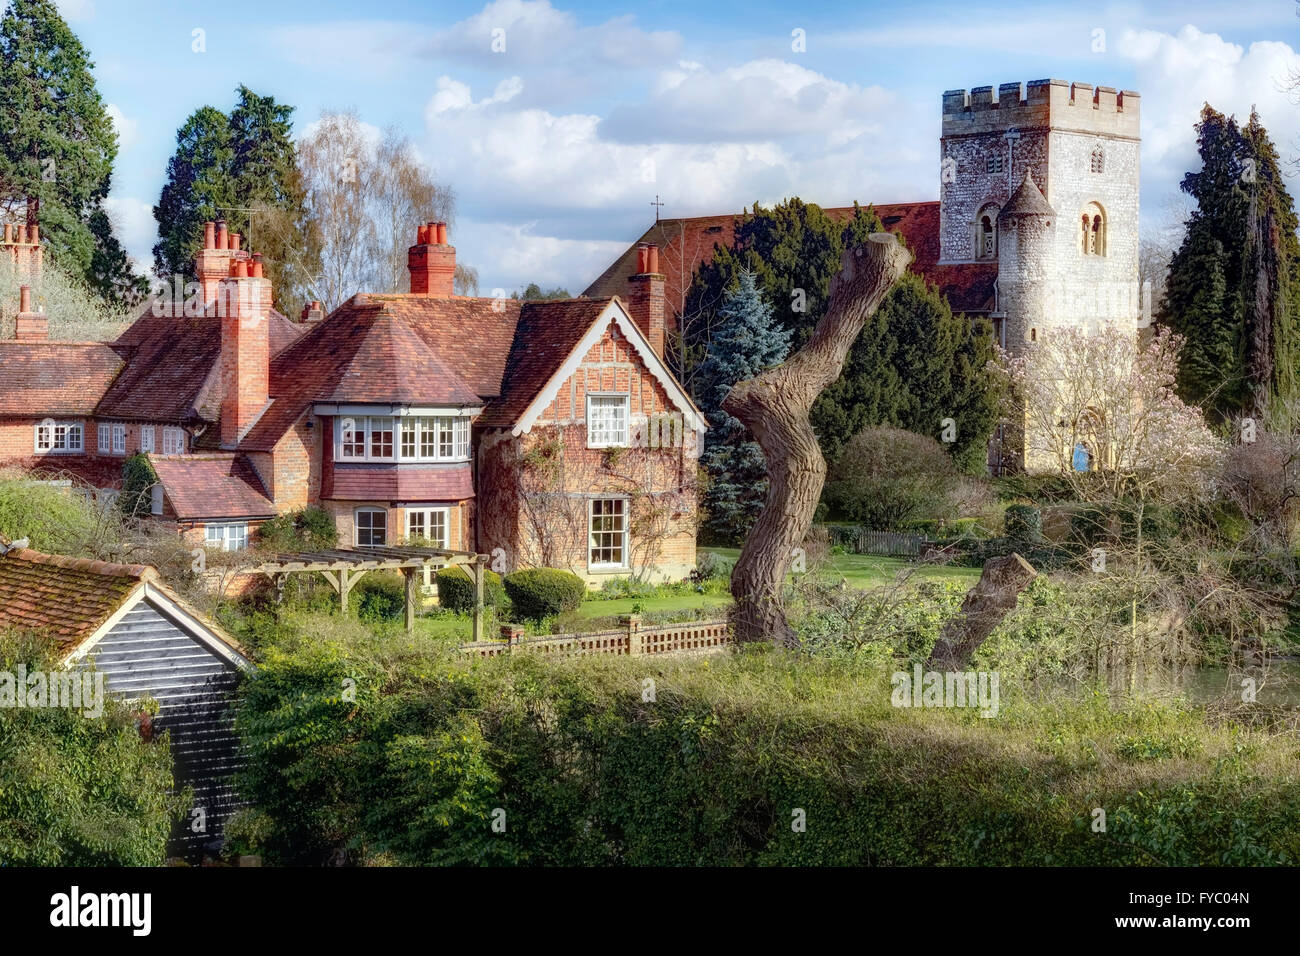 Goring, Berkshire, England, UK - Stock Image